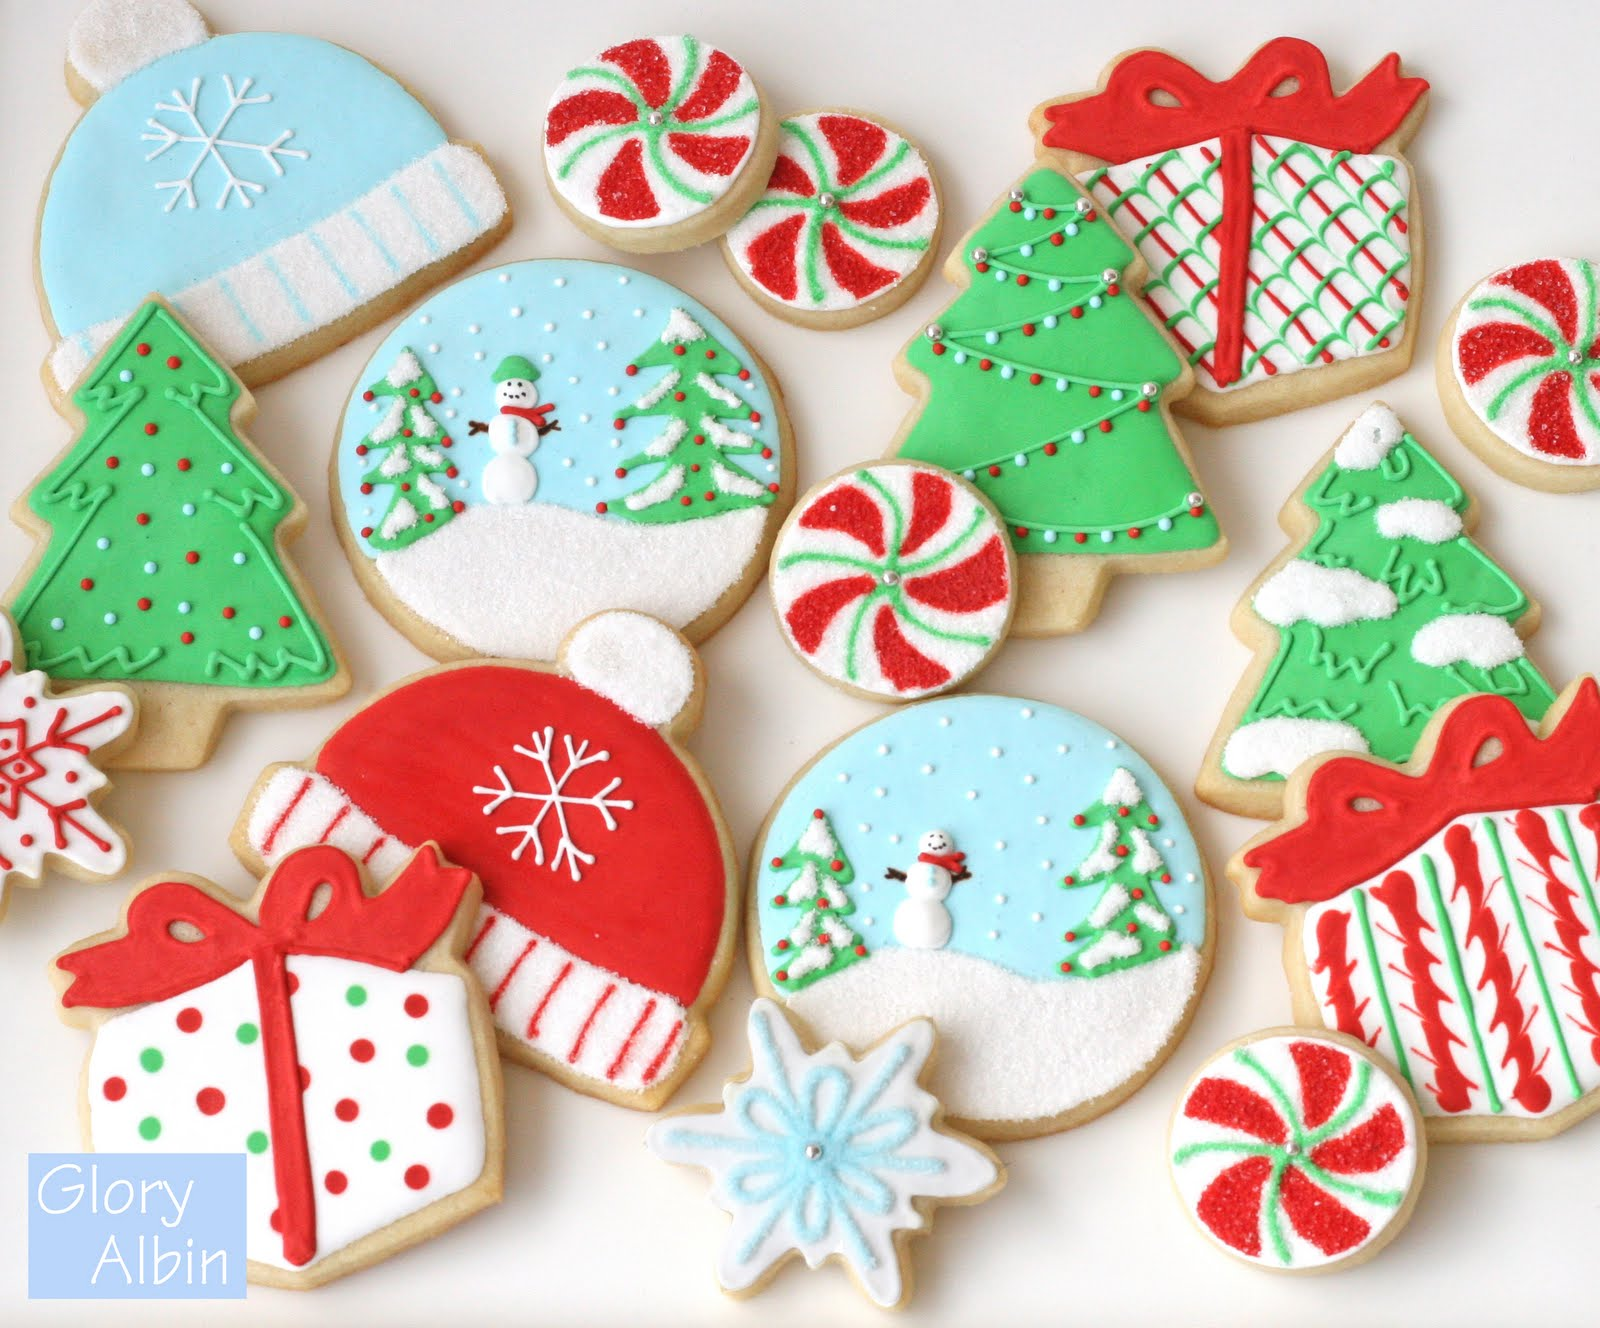 Sugar Cookies anyone?